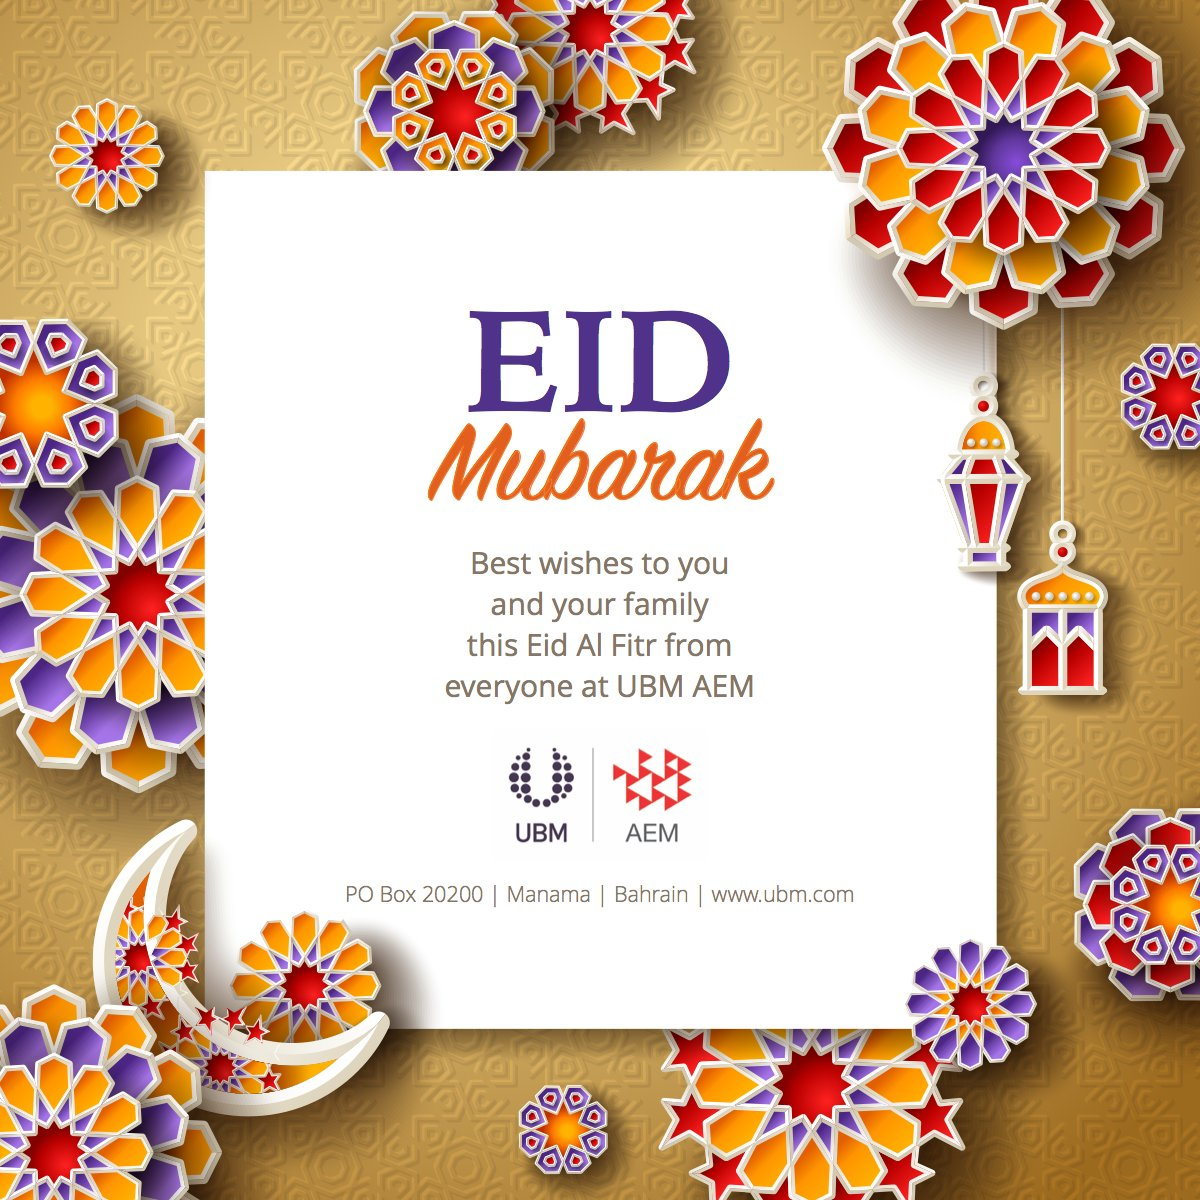 test Twitter Media - On this auspicious occasion, we wish you and your loved ones happy Eid~~~ https://t.co/iIejlJWO4Z